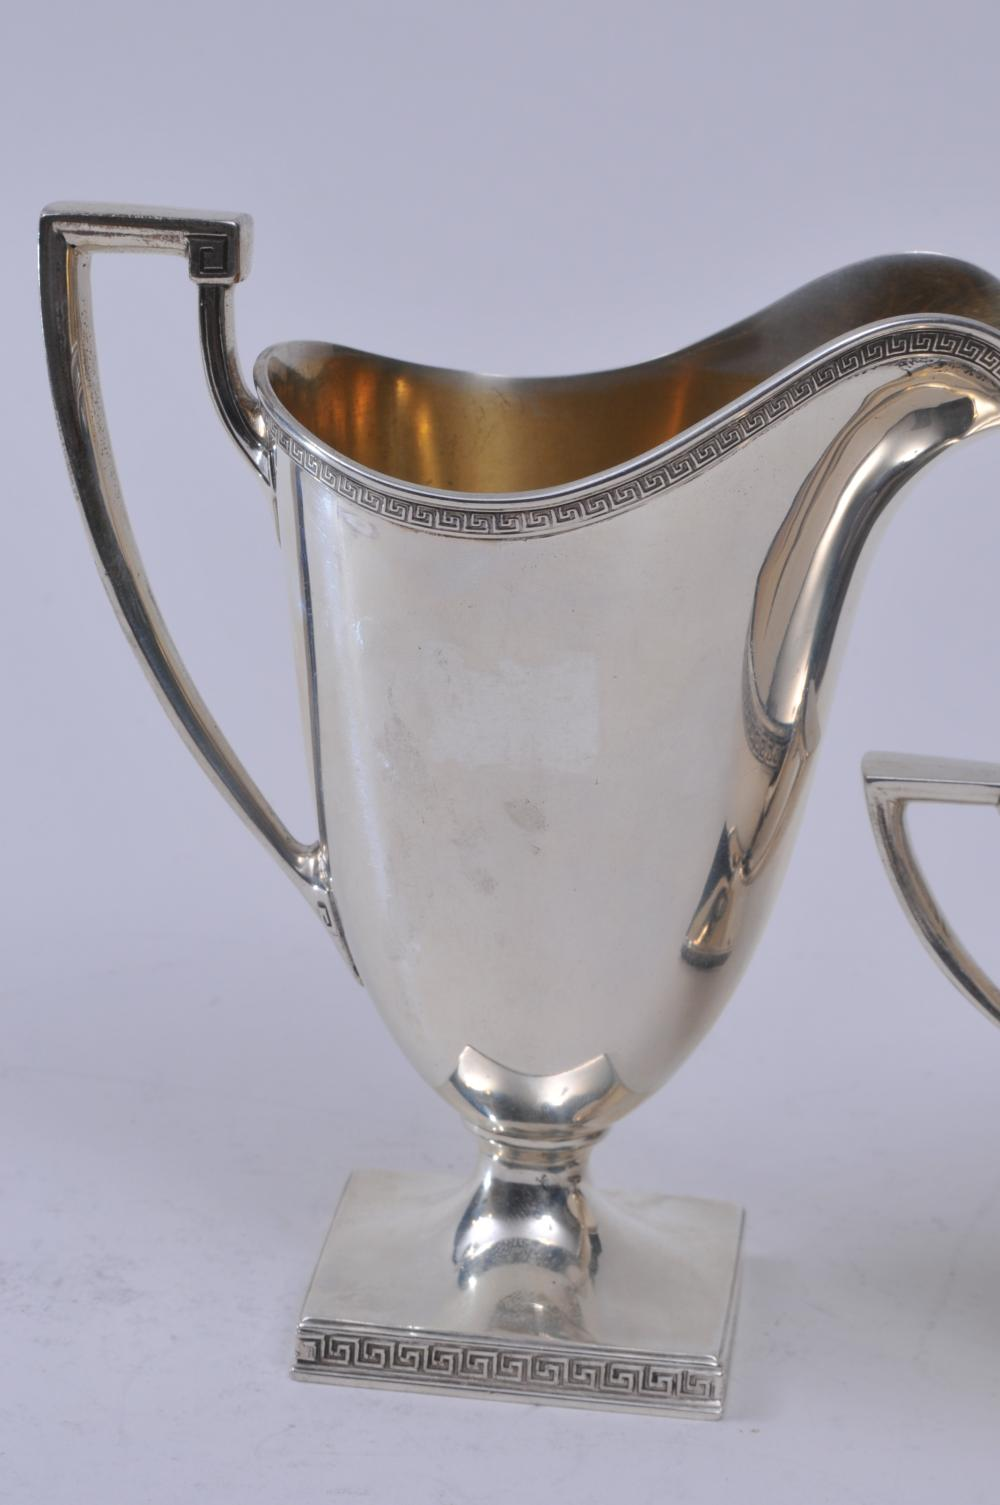 """Lot 105: Gorham sterling silver sugar and creamer. Classical form with Greek Key borders. Gilt interior on creamer. Creamer- 5-3/4"""" high. 14.6 ozt. Total weight. Good condition."""